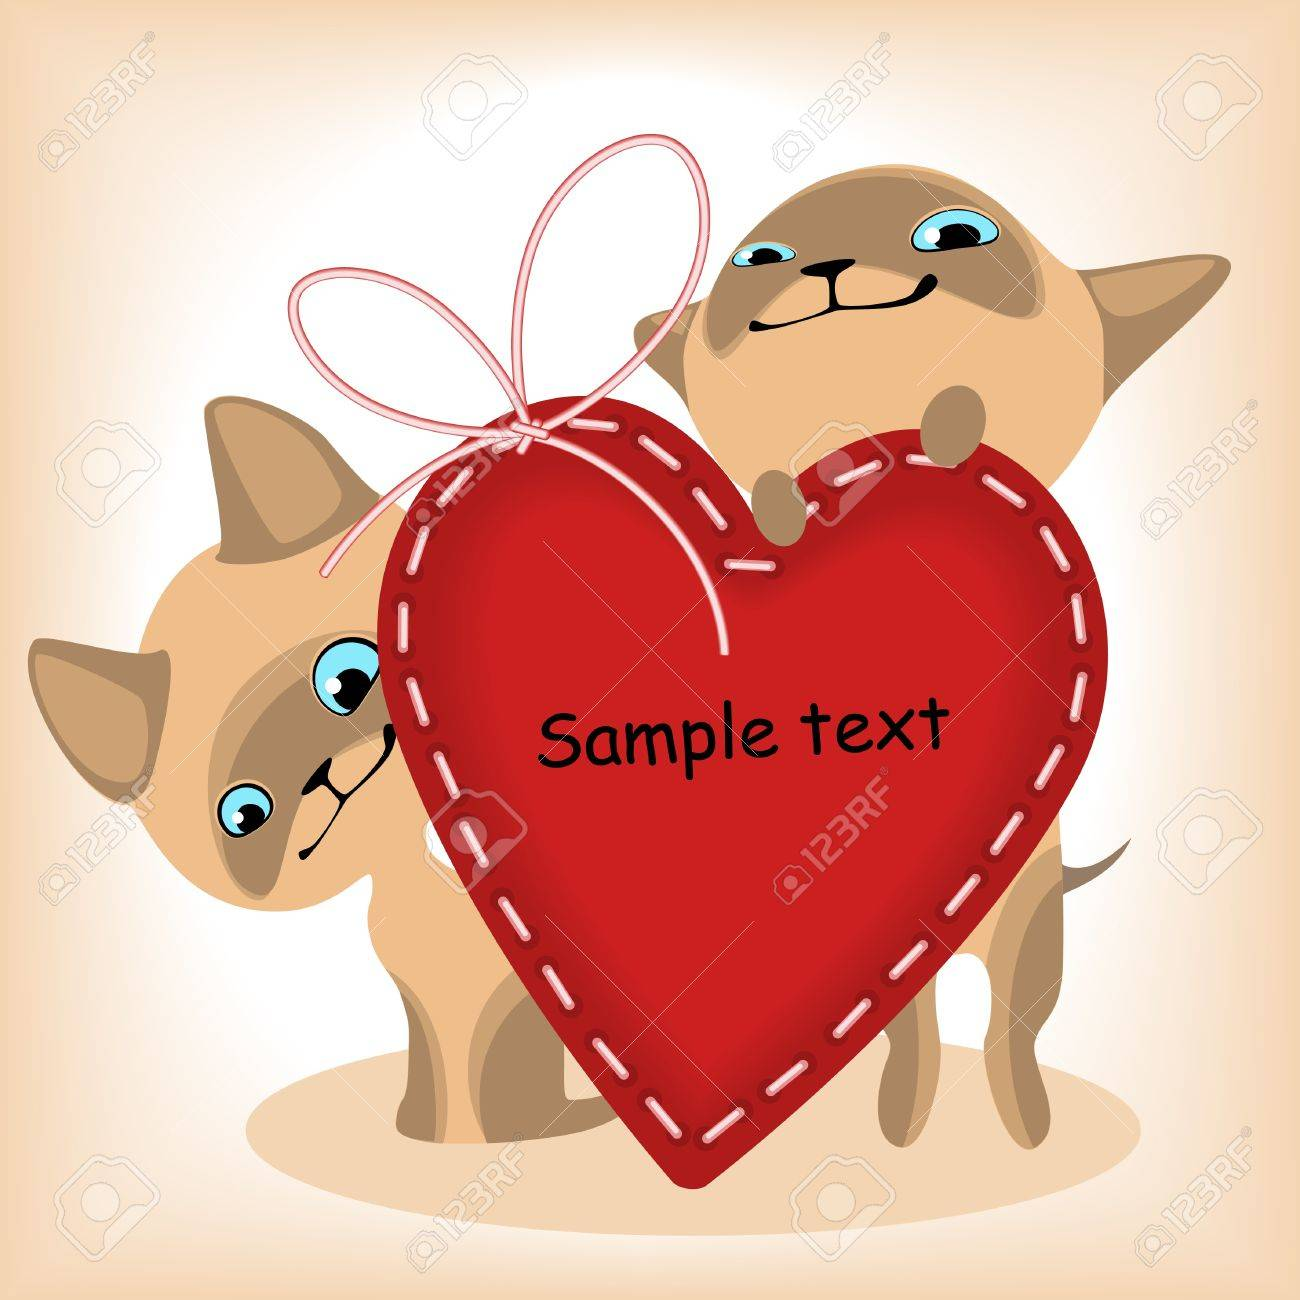 heart. Siamese kittens. similar to the portfolio Stock Vector - 9279226